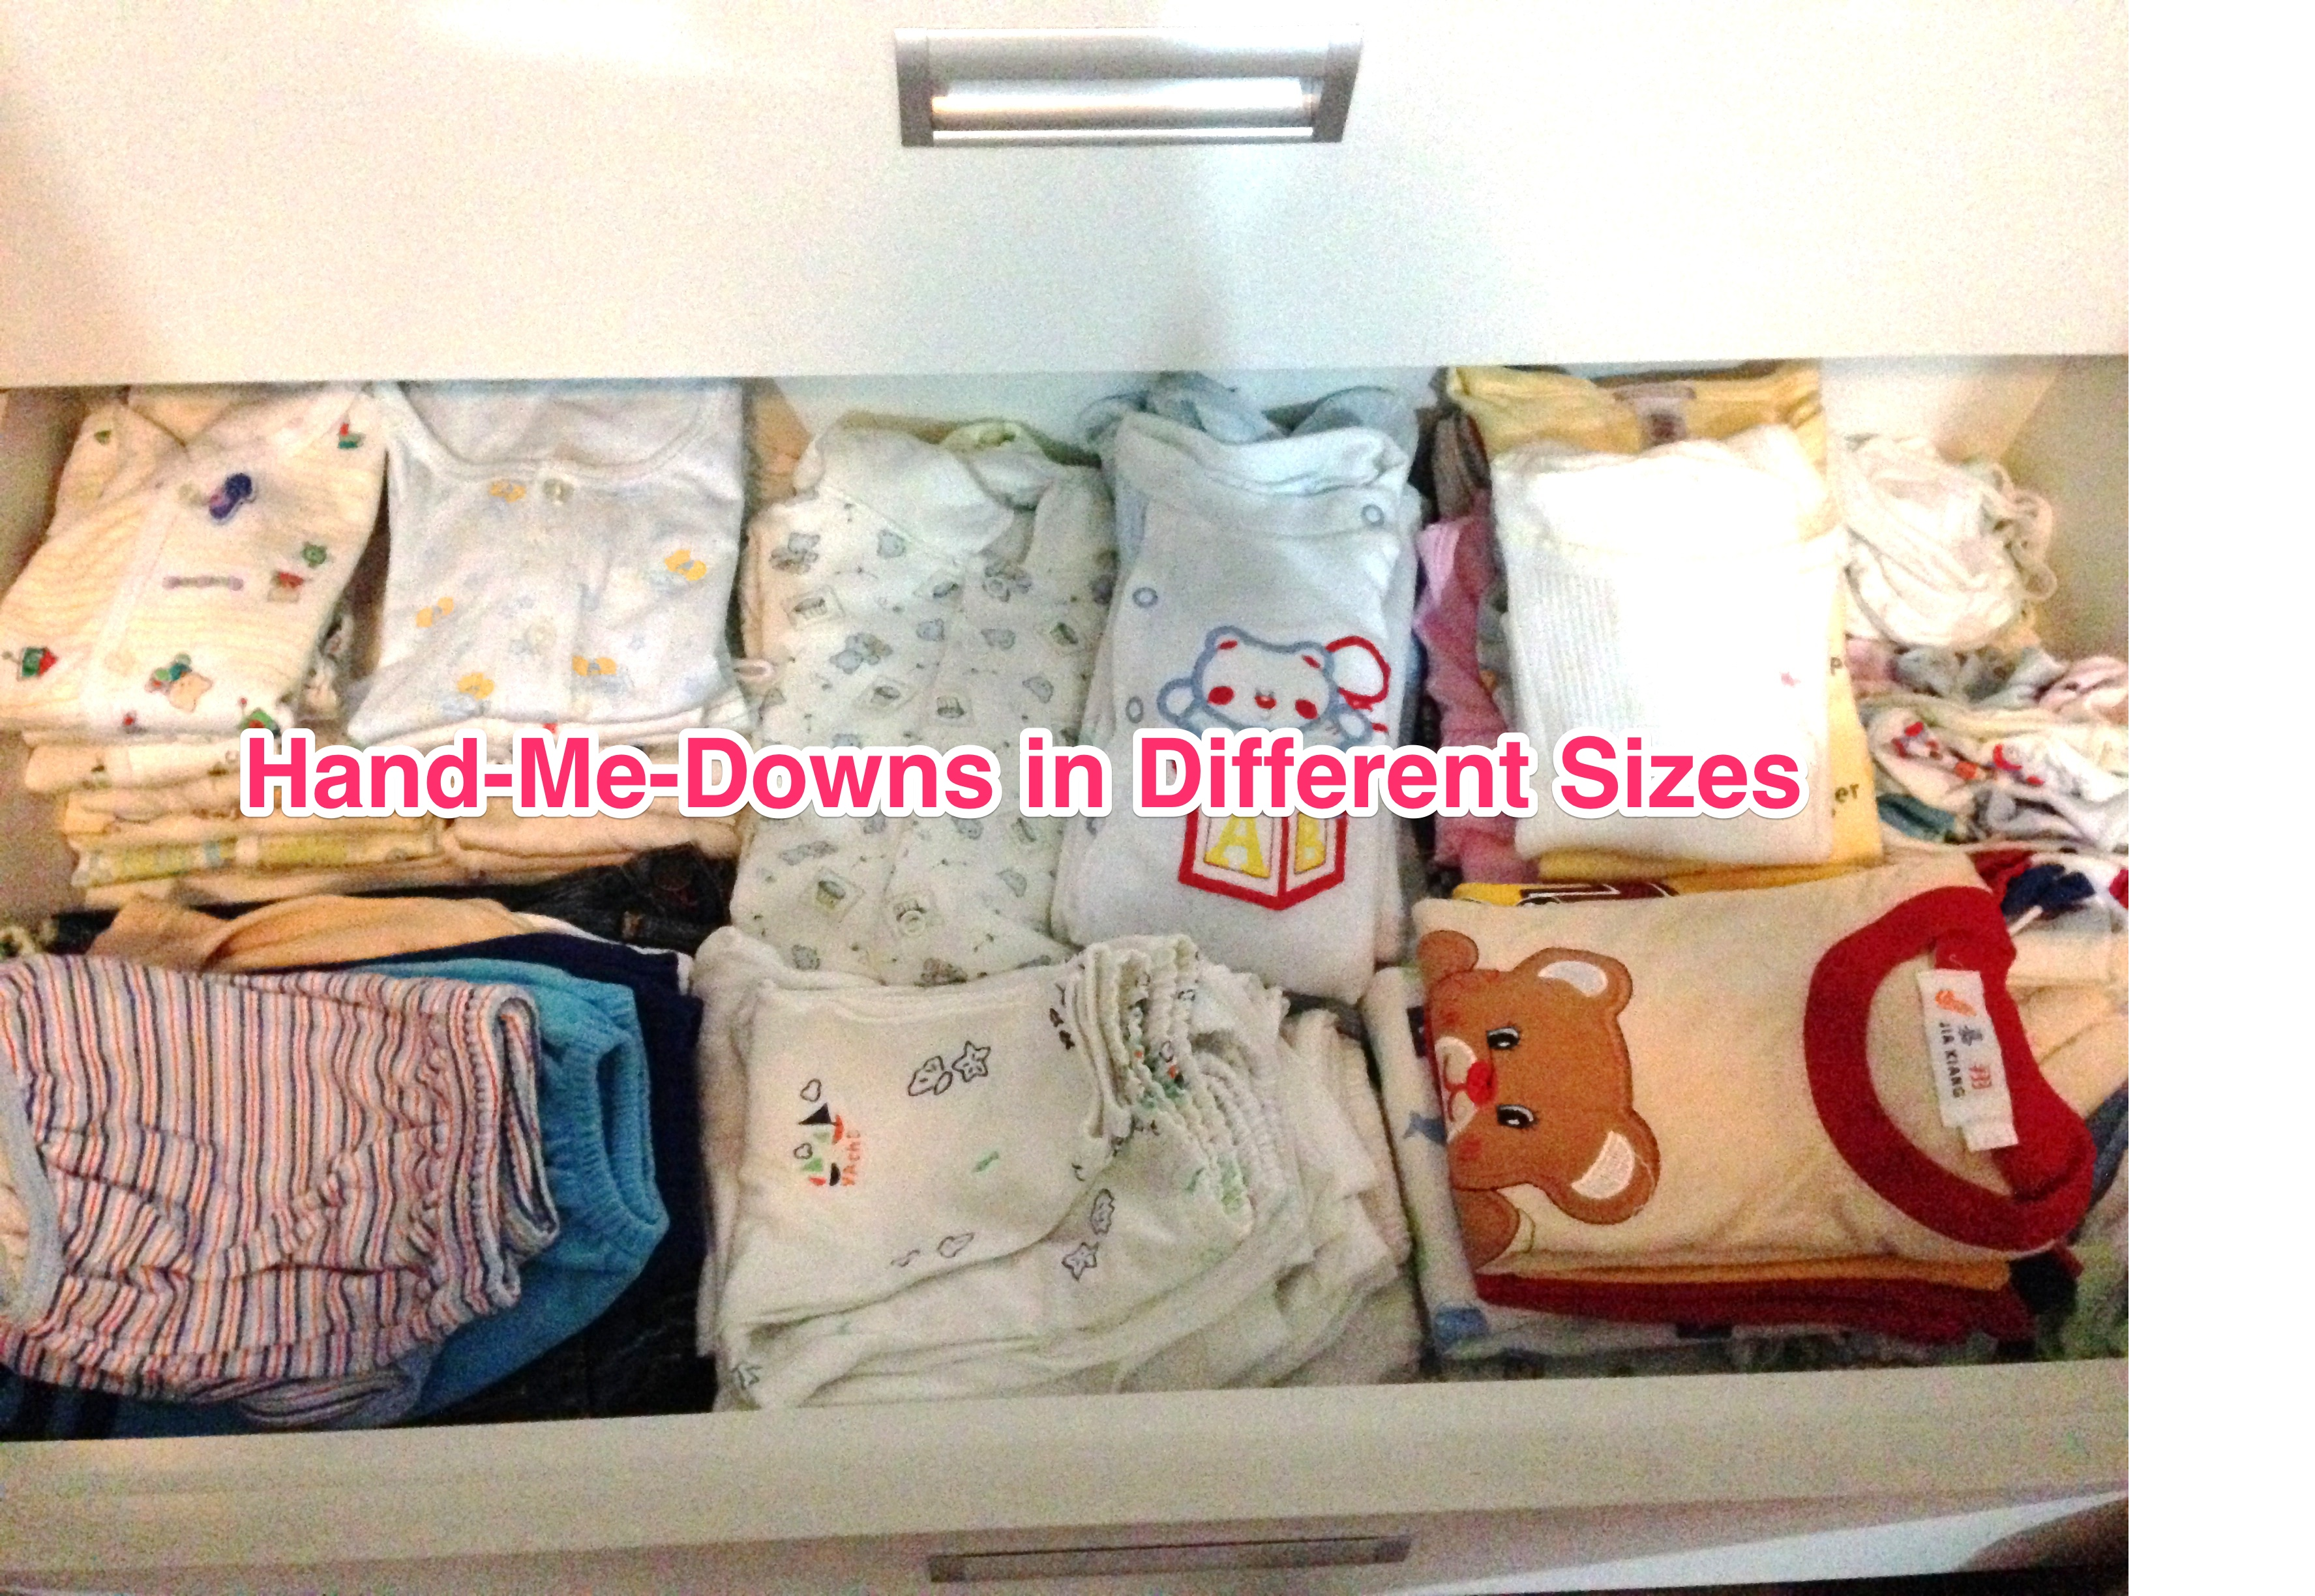 Baby clothes in different sizes